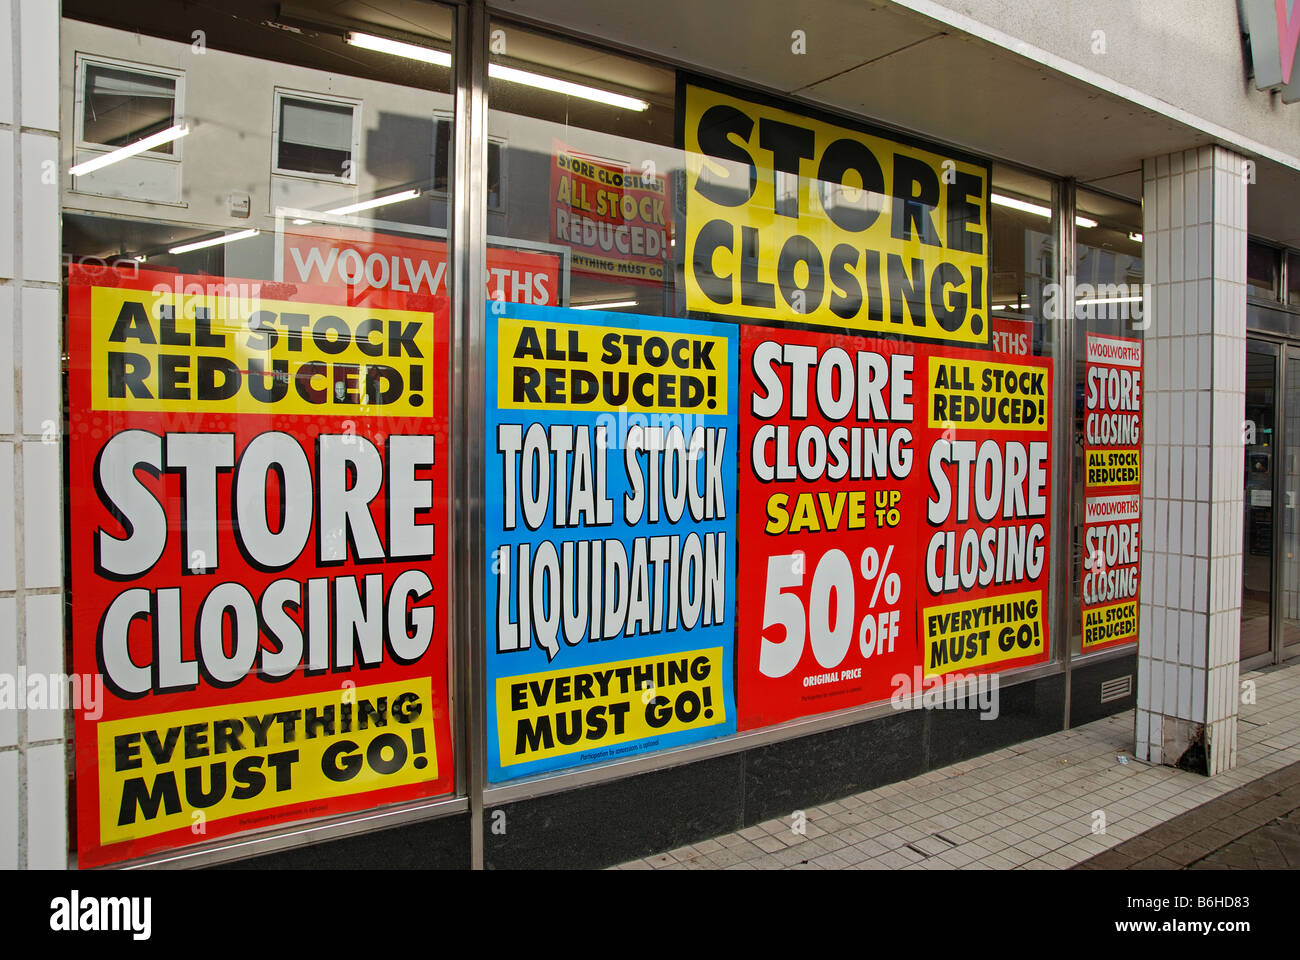 store closing down posters in the window of a woolworths store,england,uk - Stock Image